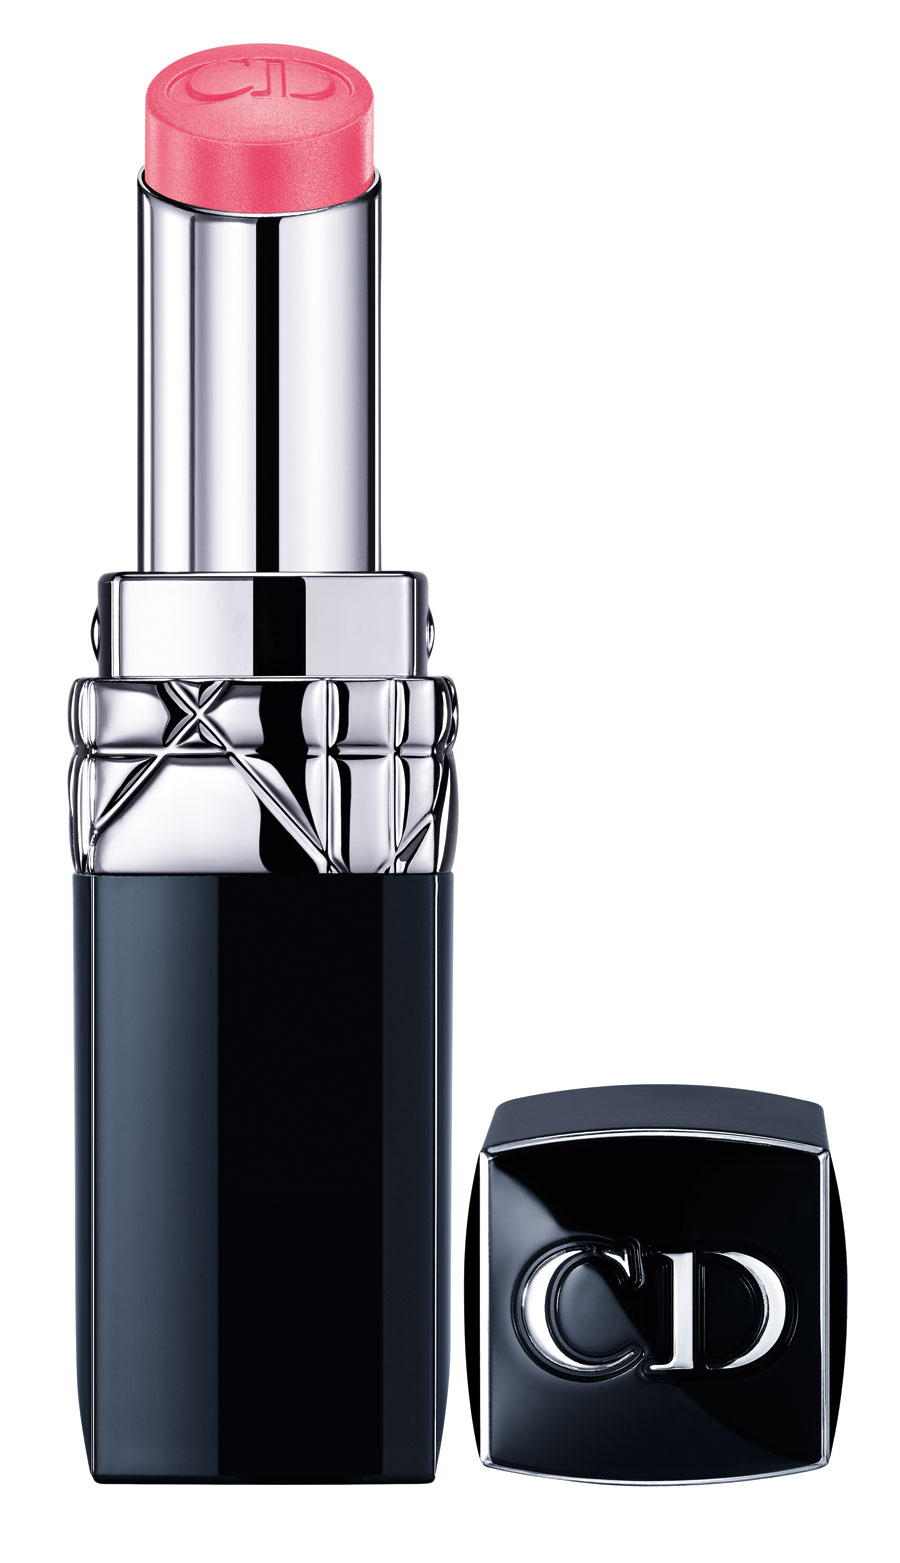 Dior Glowing Gardens. Rouge Baume 750.